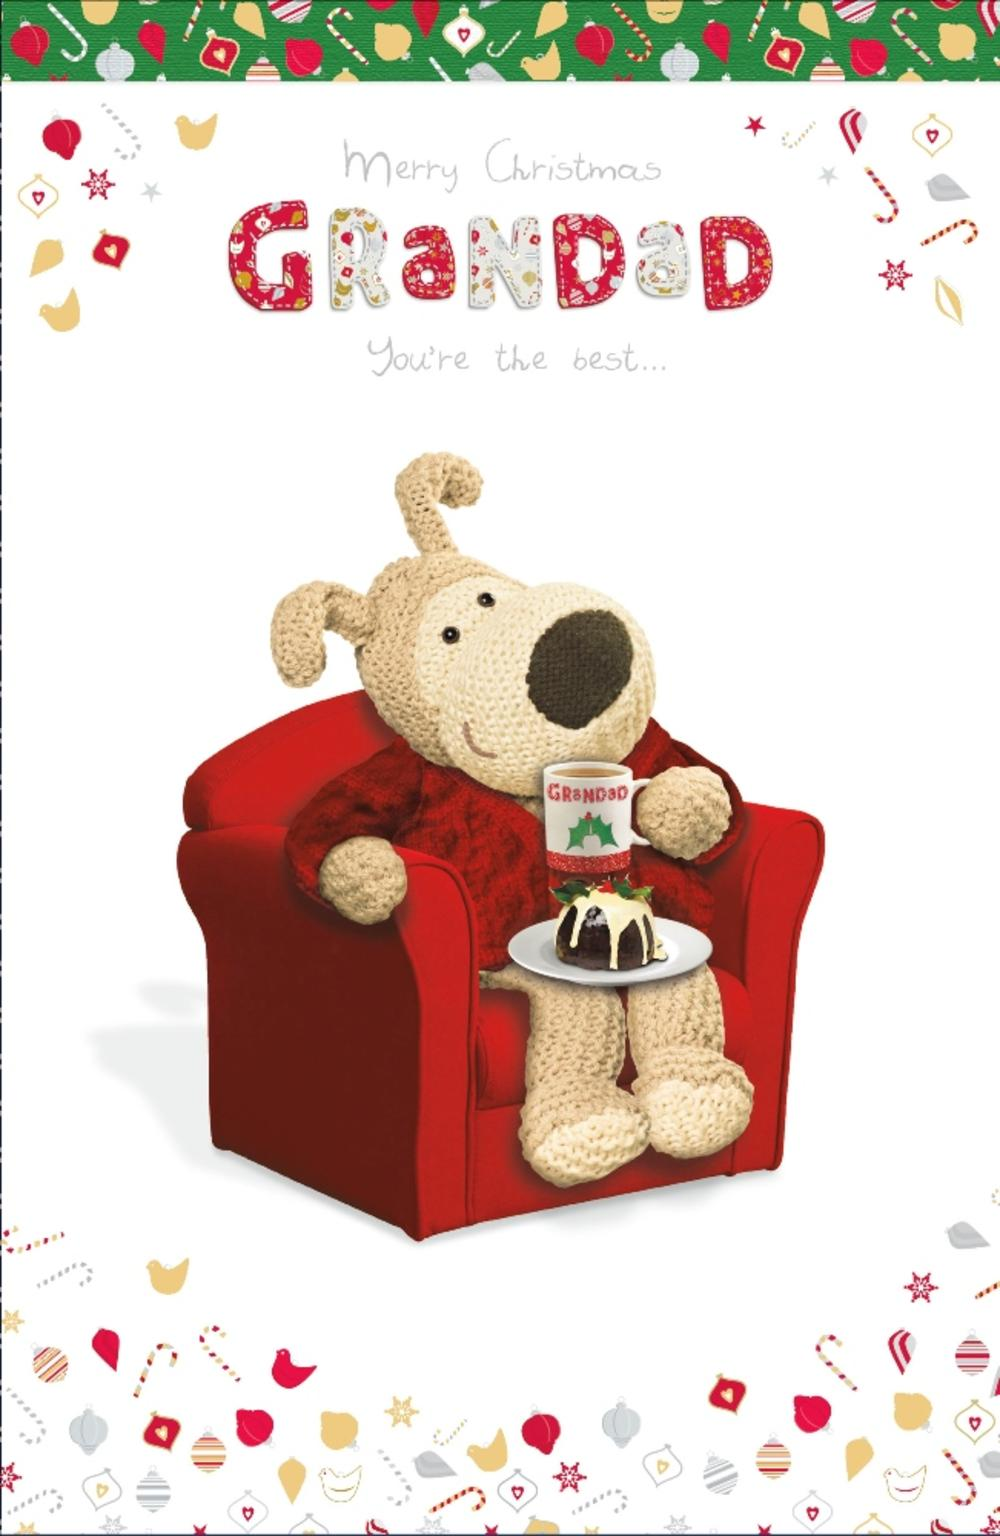 Boofle Grandad Merry Christmas Greeting Card